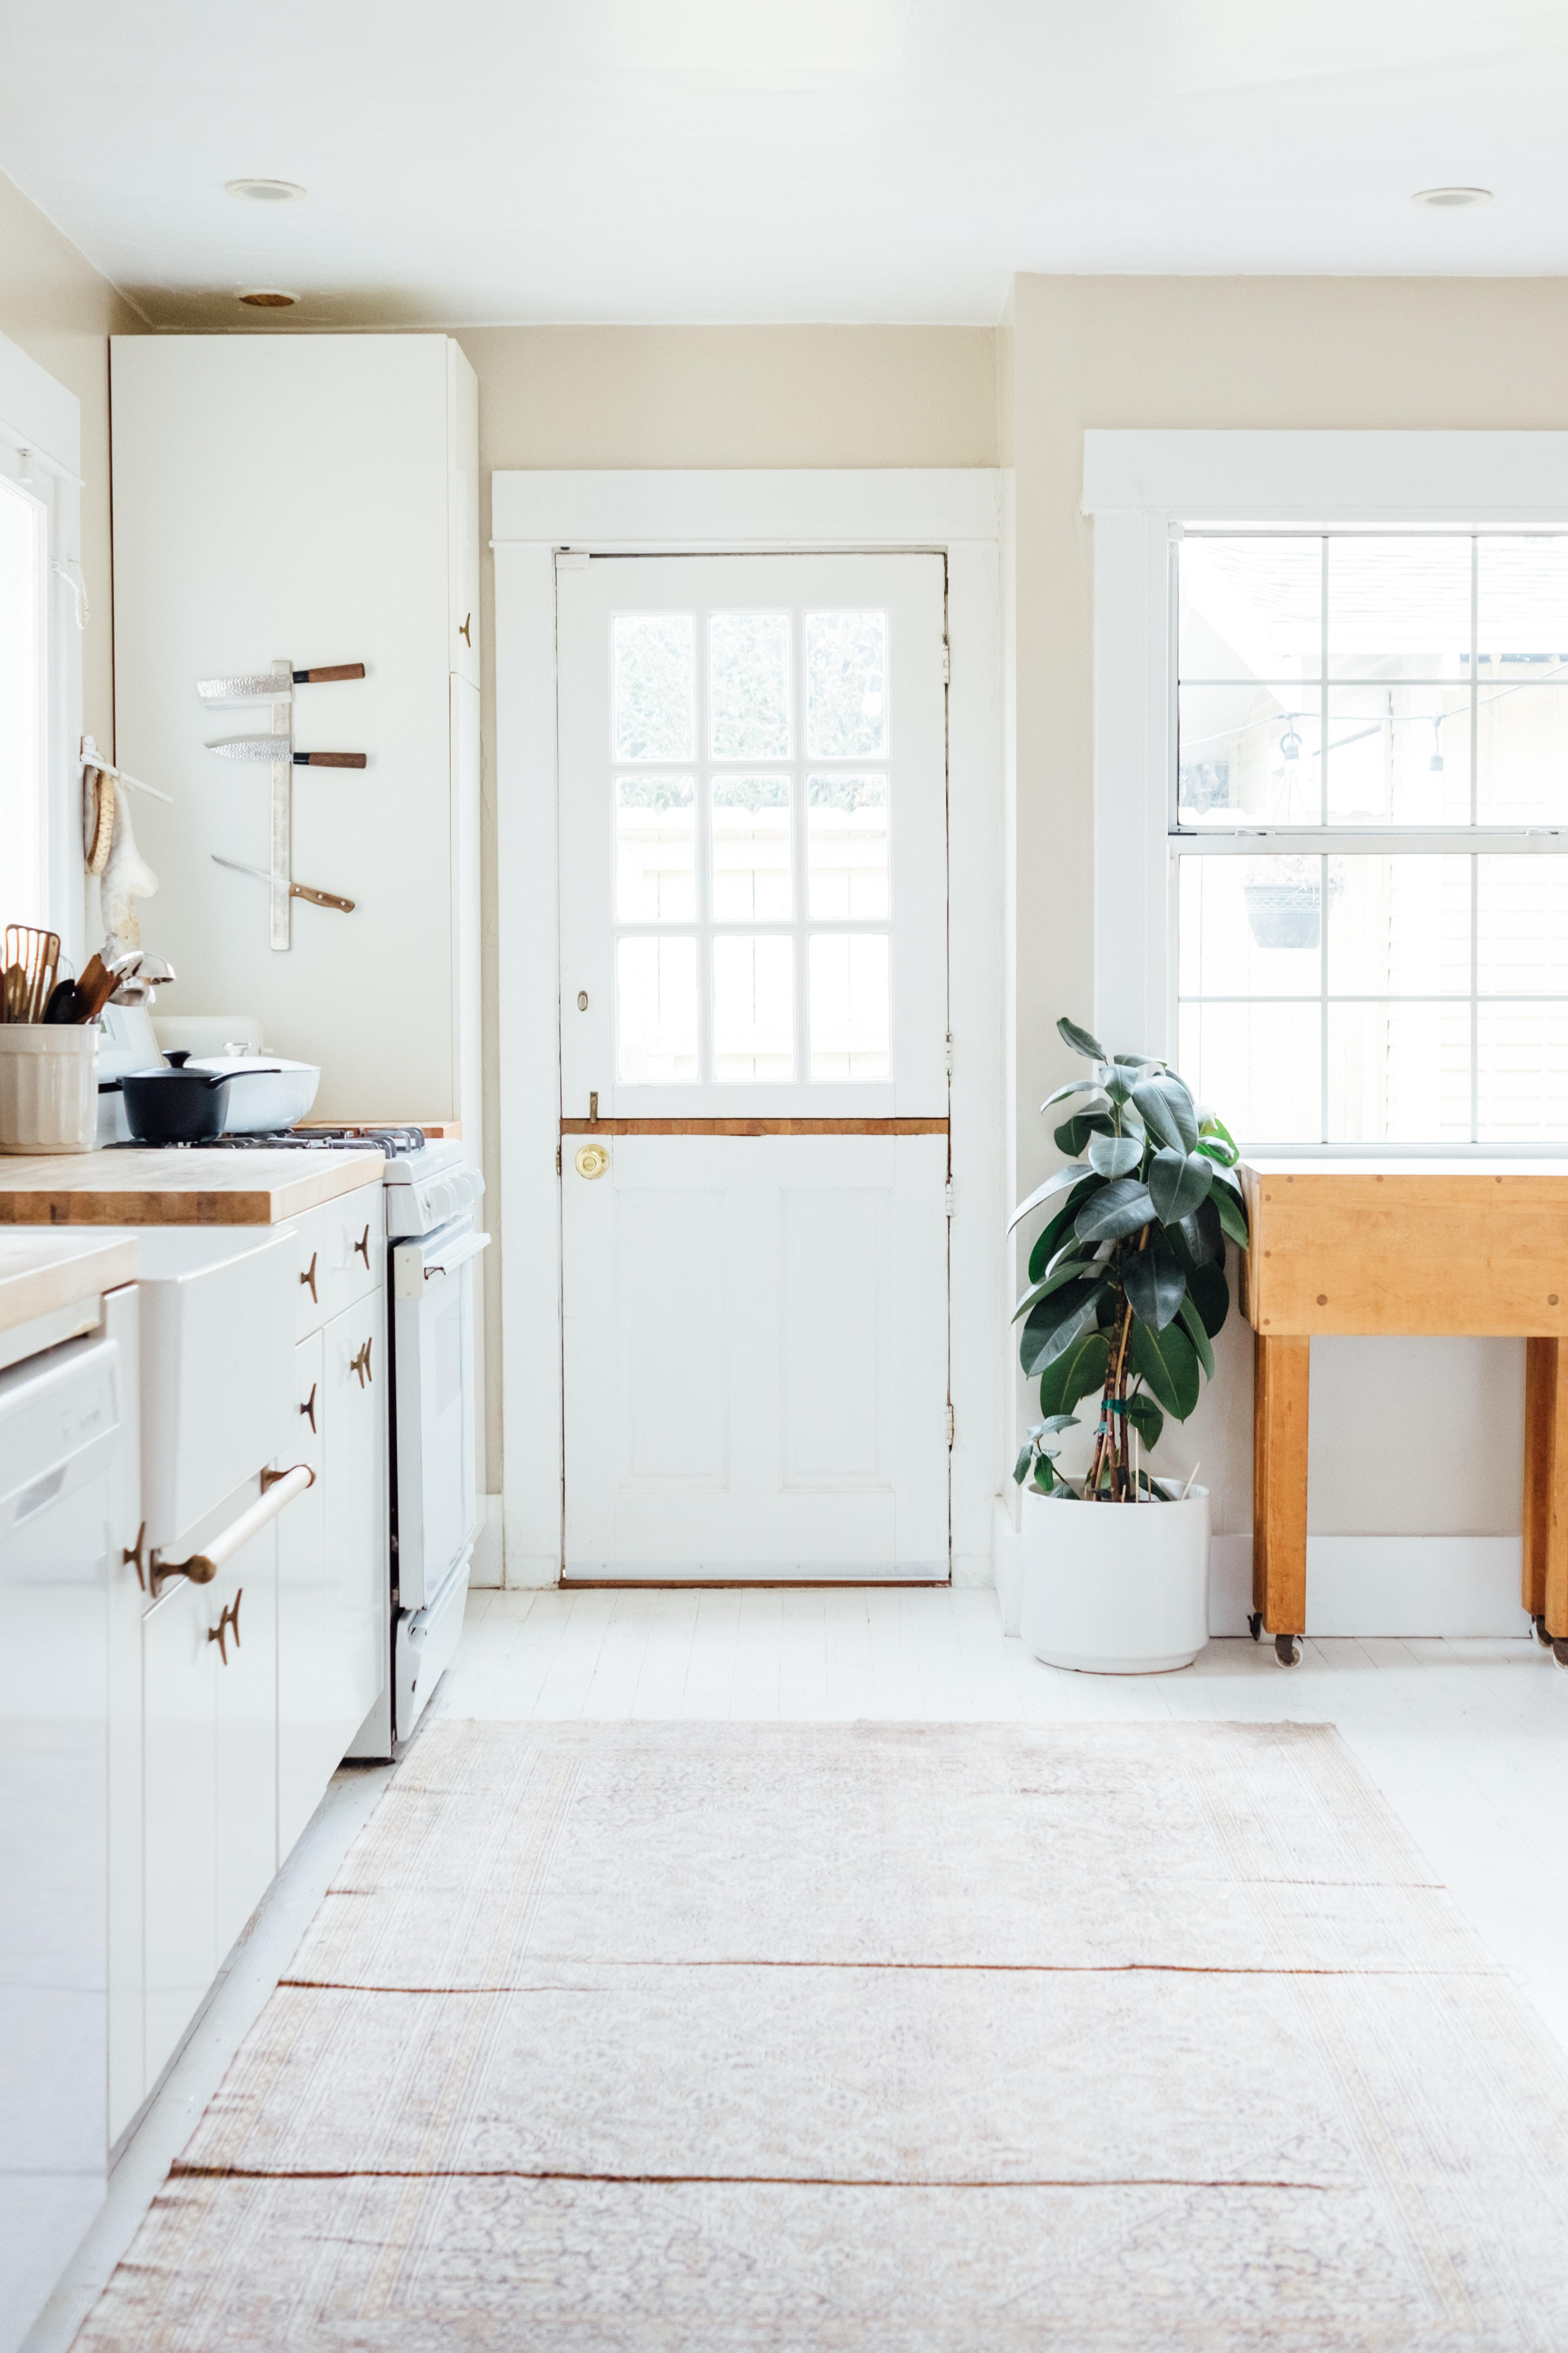 The 7 Home Decor Items I've Gotten To Make My Home Feel Like My Own